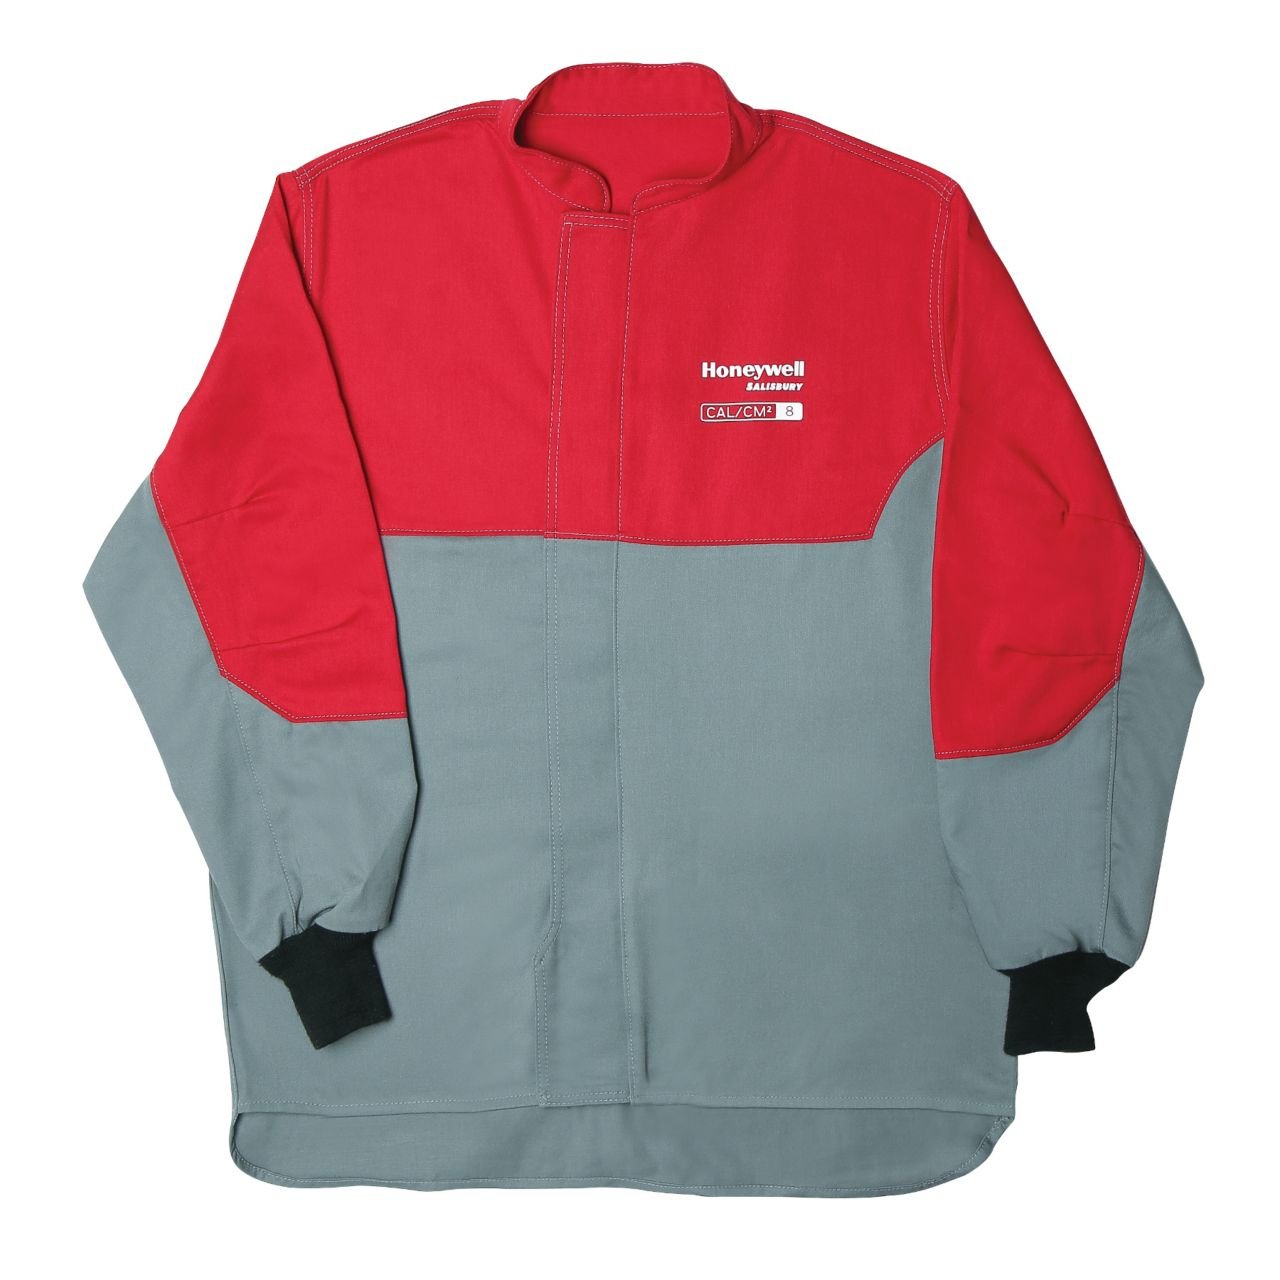 sps-his-8-cal-jacket-highres